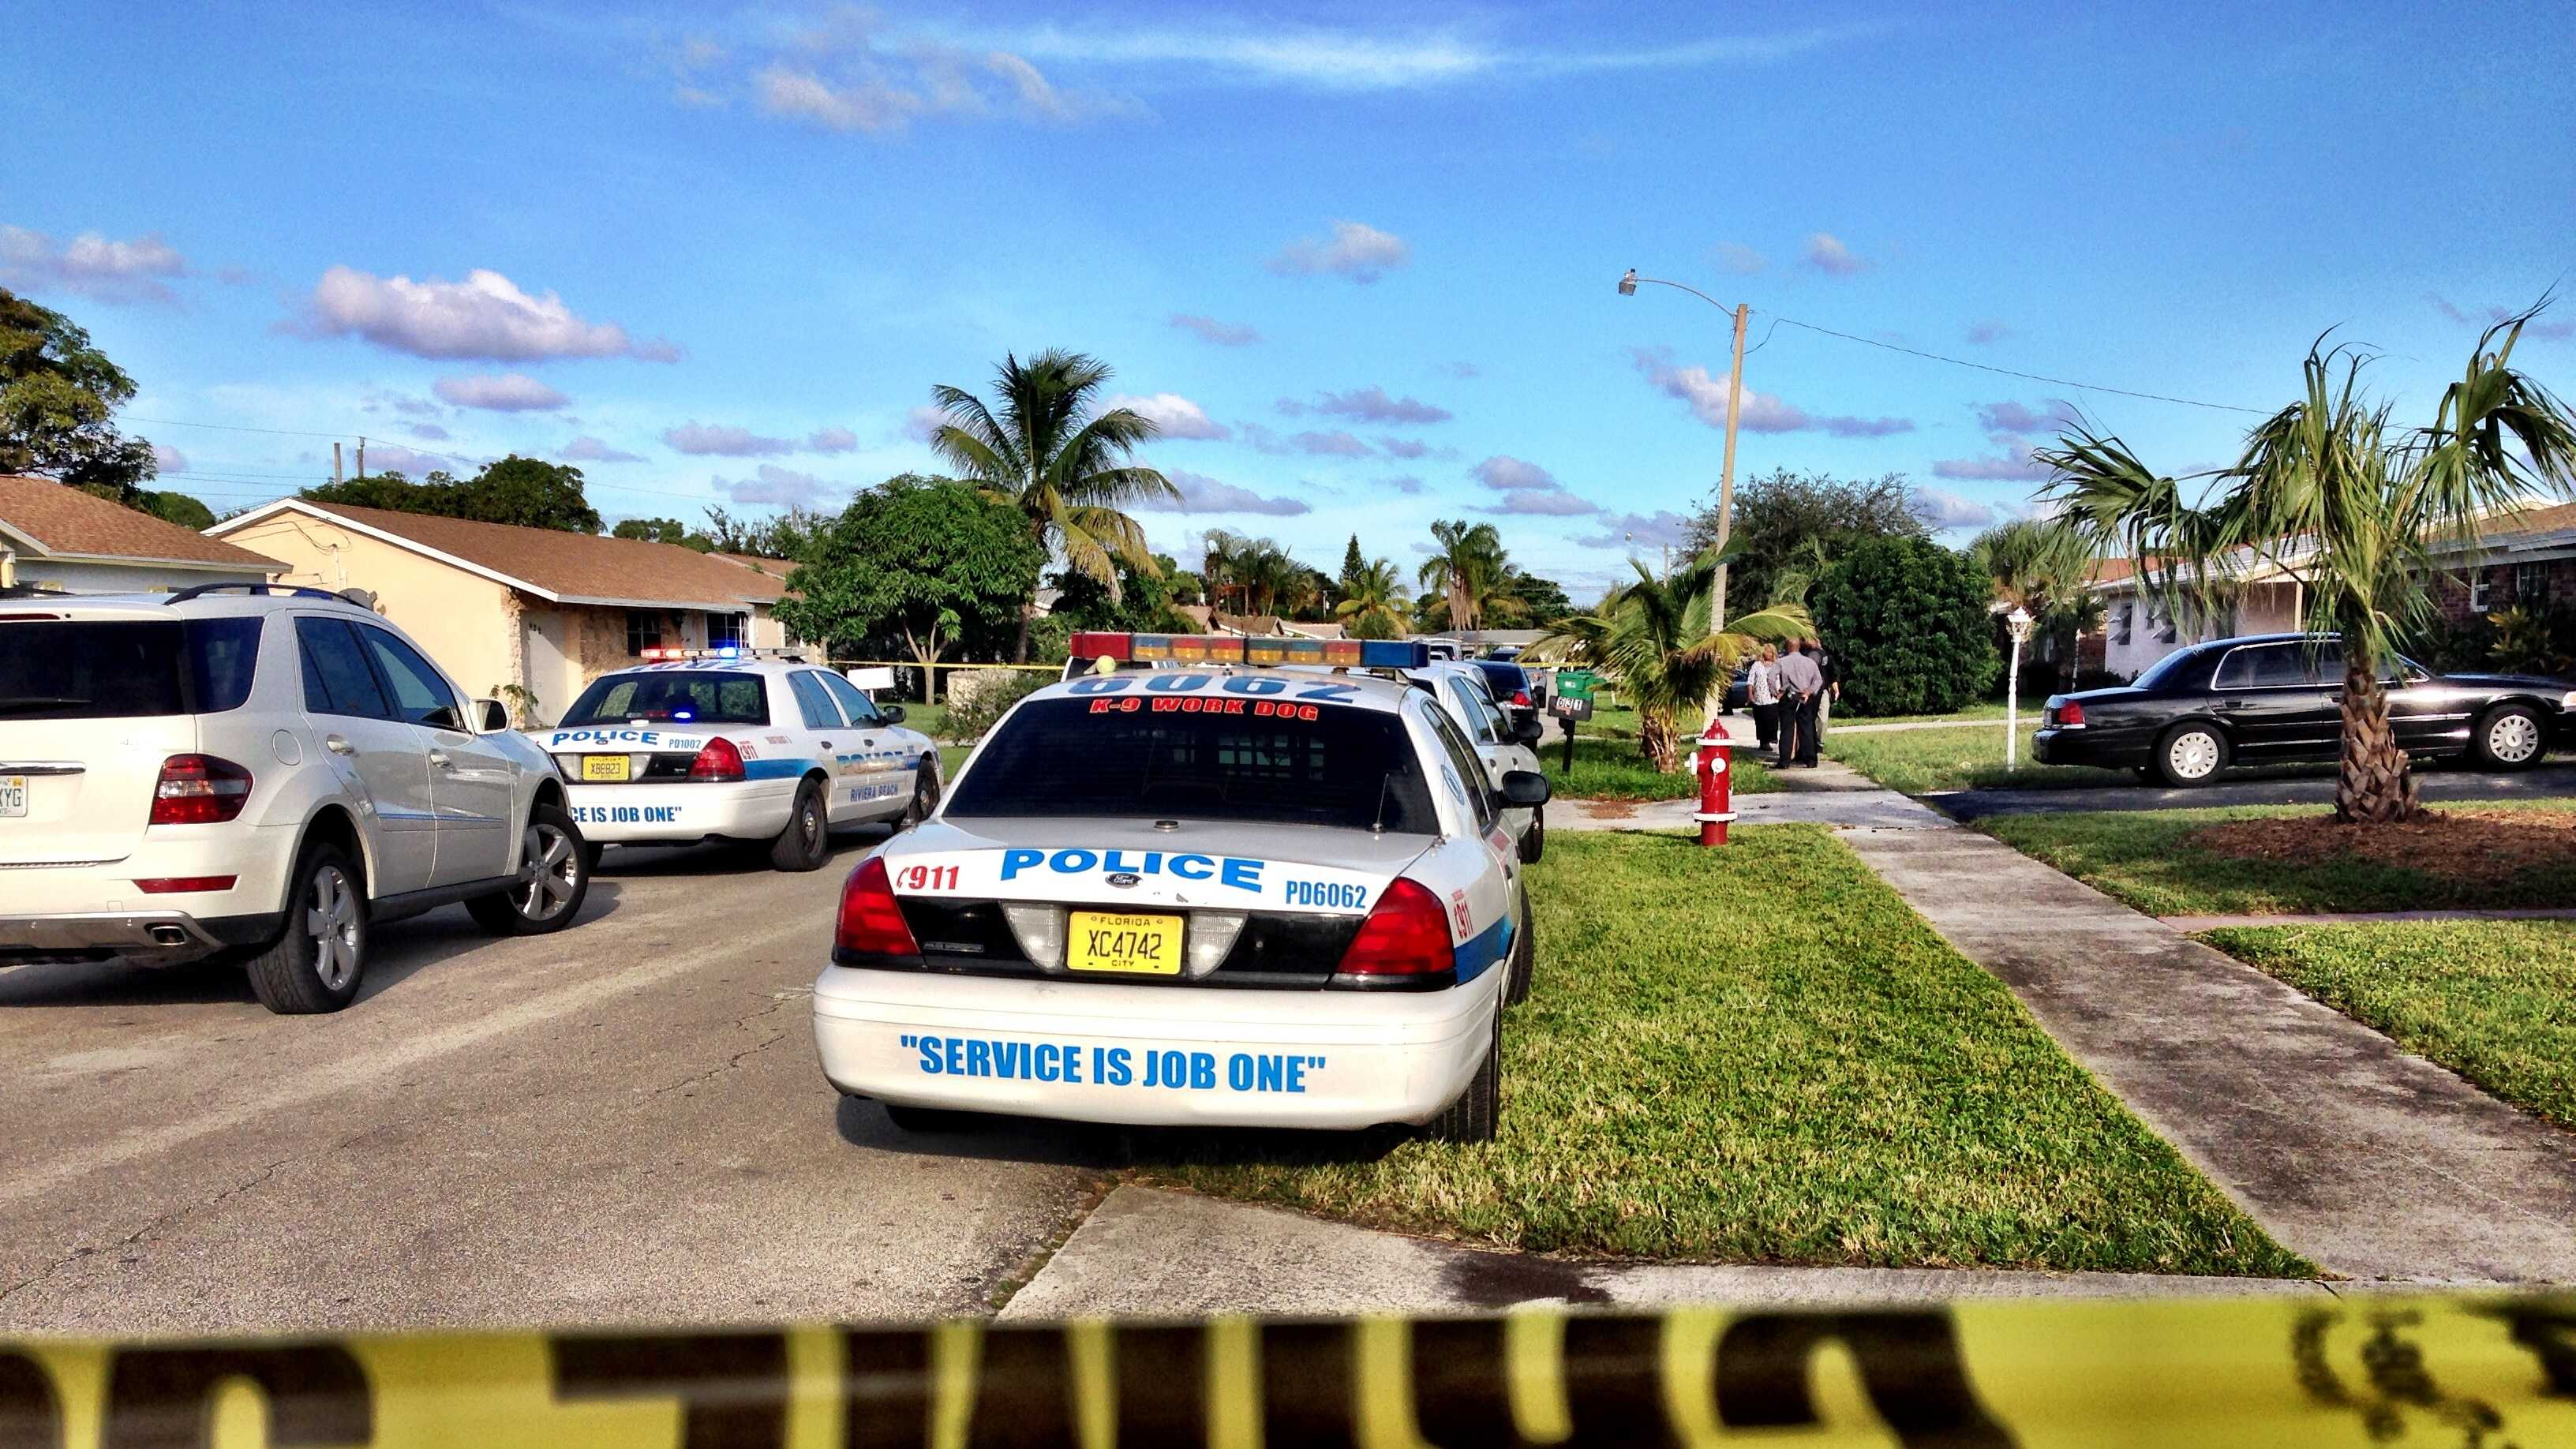 Police are trying to figure out who shot and killed a woman in Riviera Beach on Wednesday afternoon.